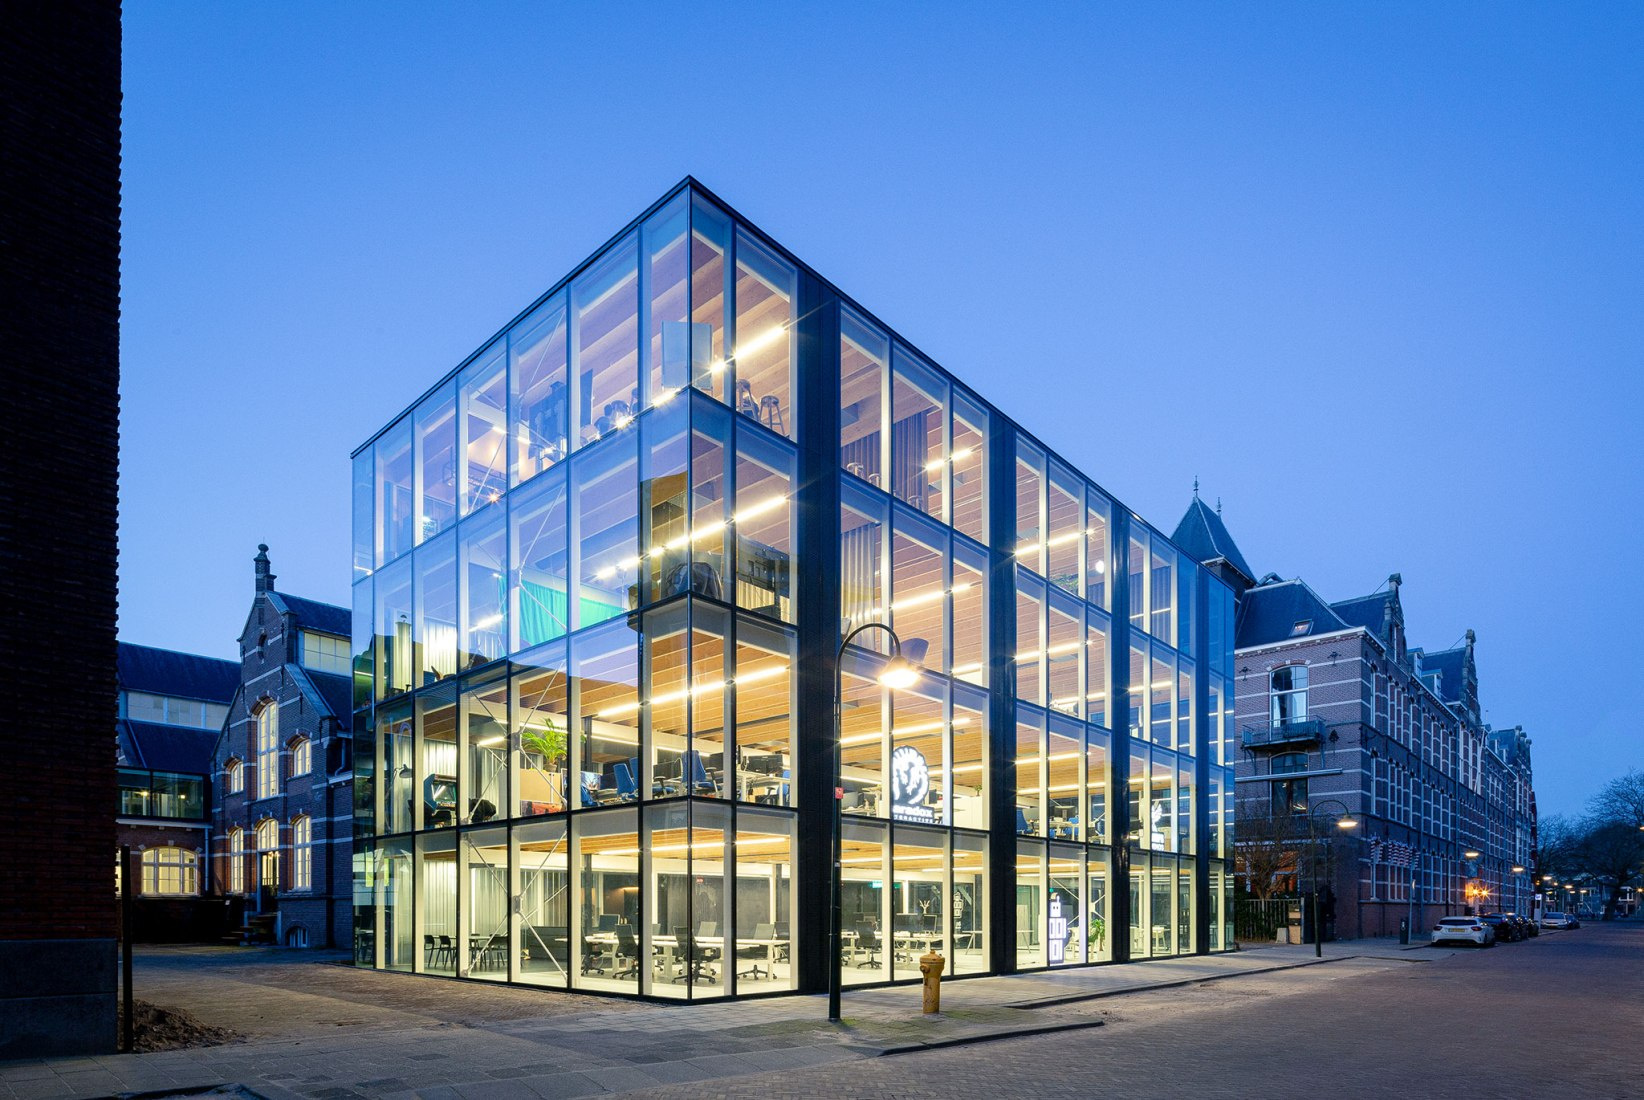 Building D(emountable) by cepezed. Photograph by Lucas van der Wee / cepezed